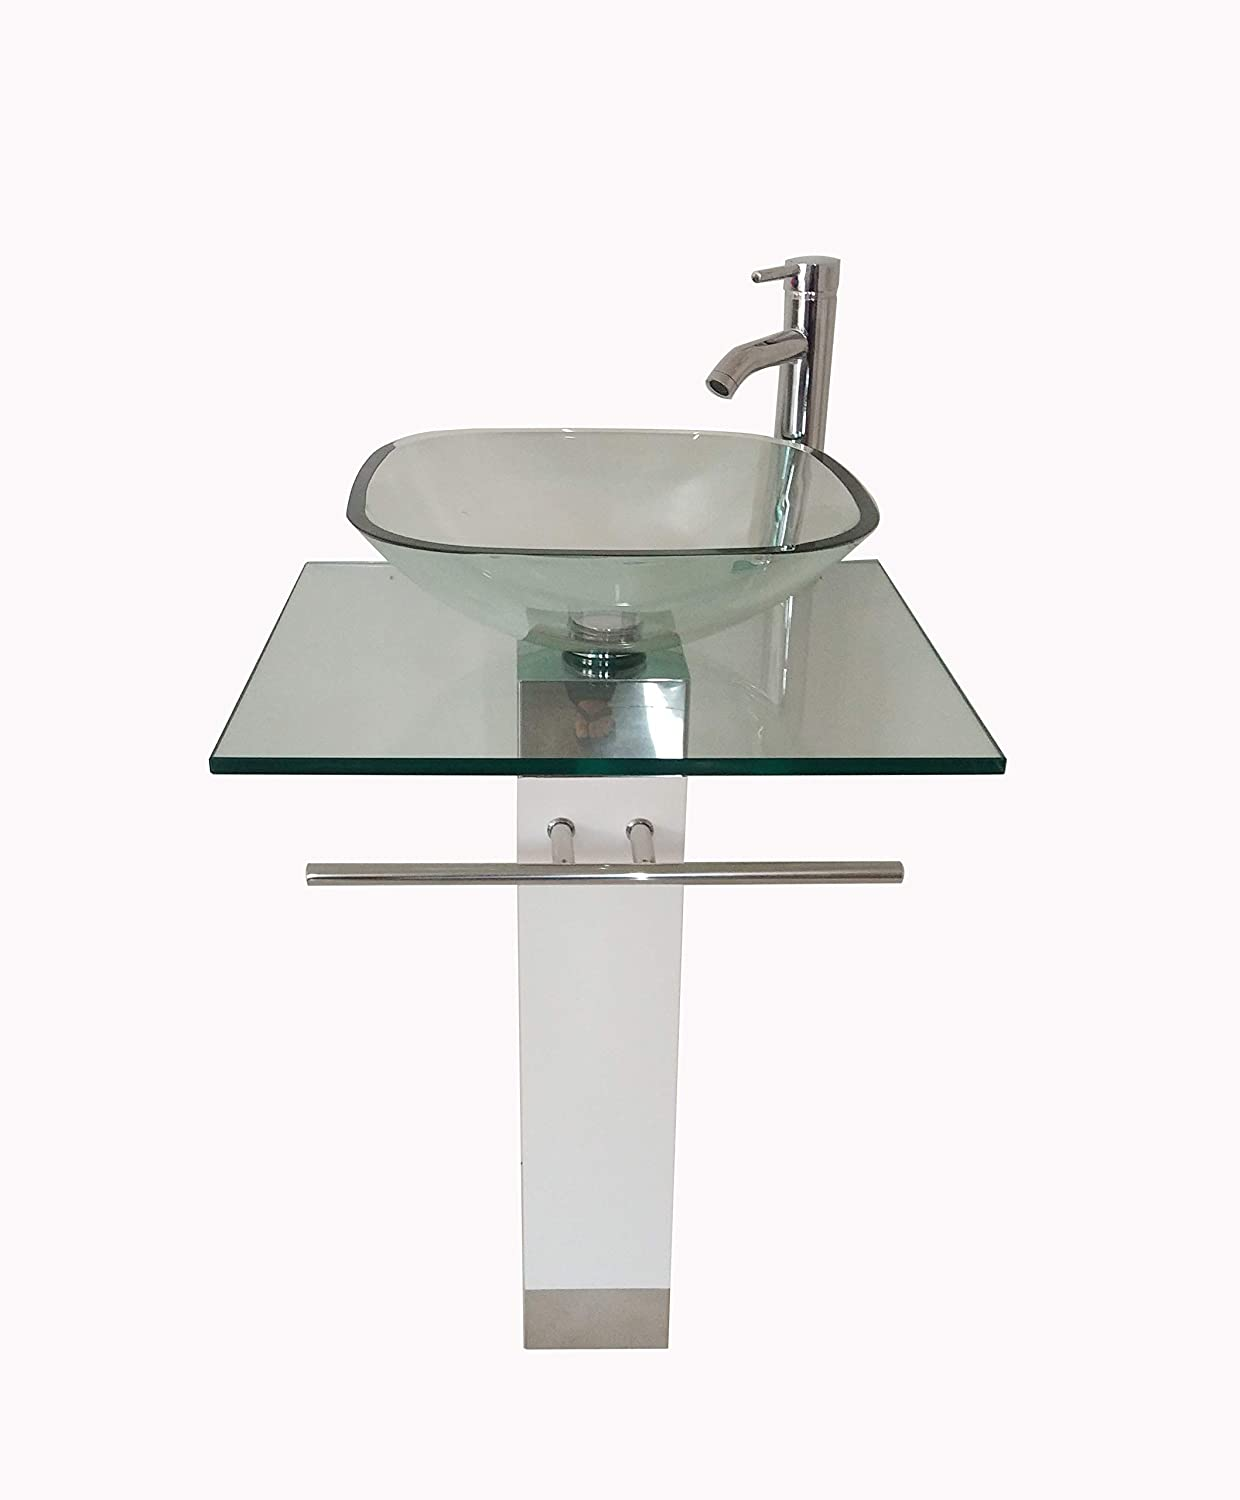 24 Bathroom Pedestal Vanity Glass Vessel Sink Set with Chrome Faucet Drain and Towel Bar included WHITE